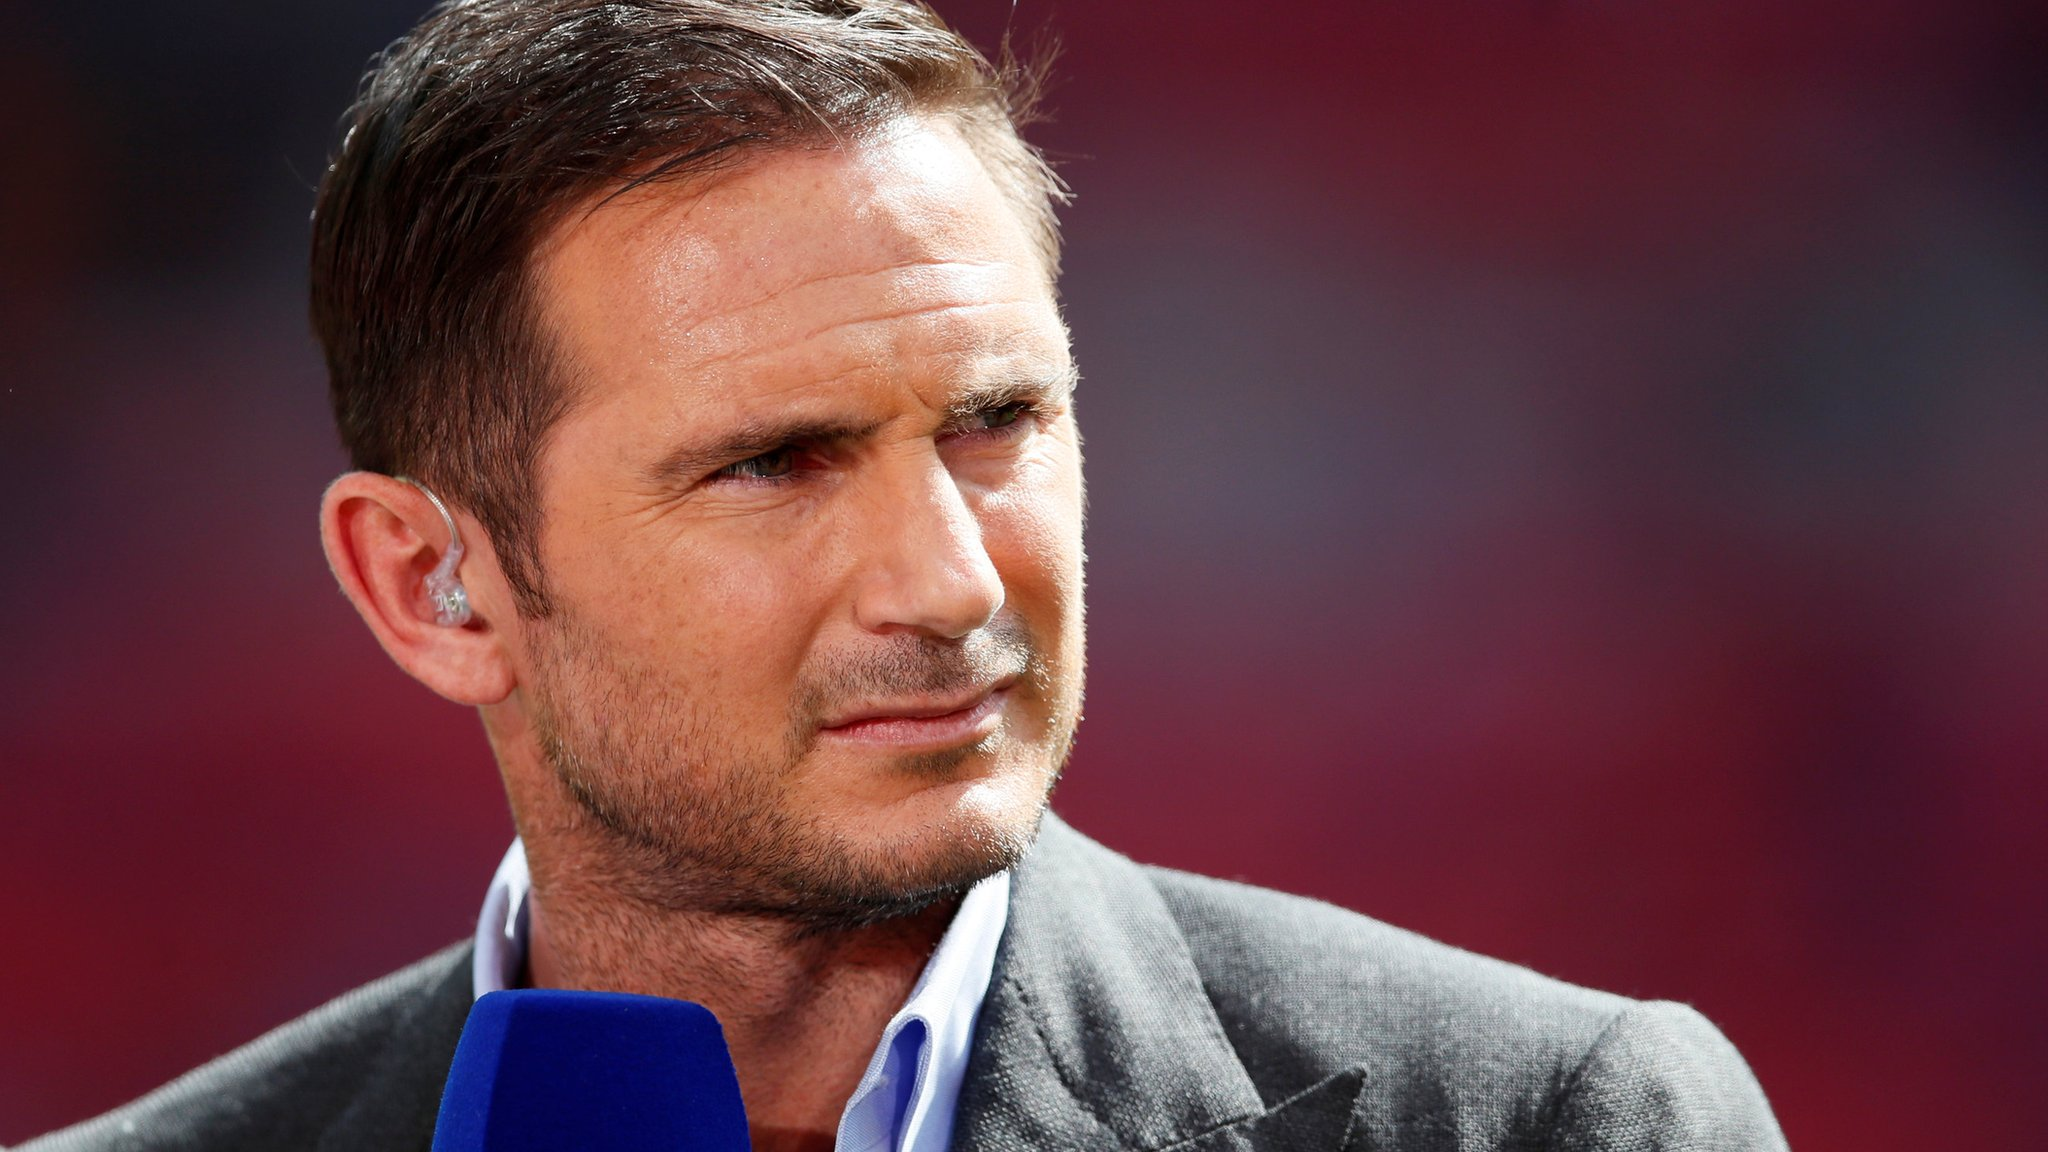 Derby County: Frank Lampard among 20 applicants for manager job